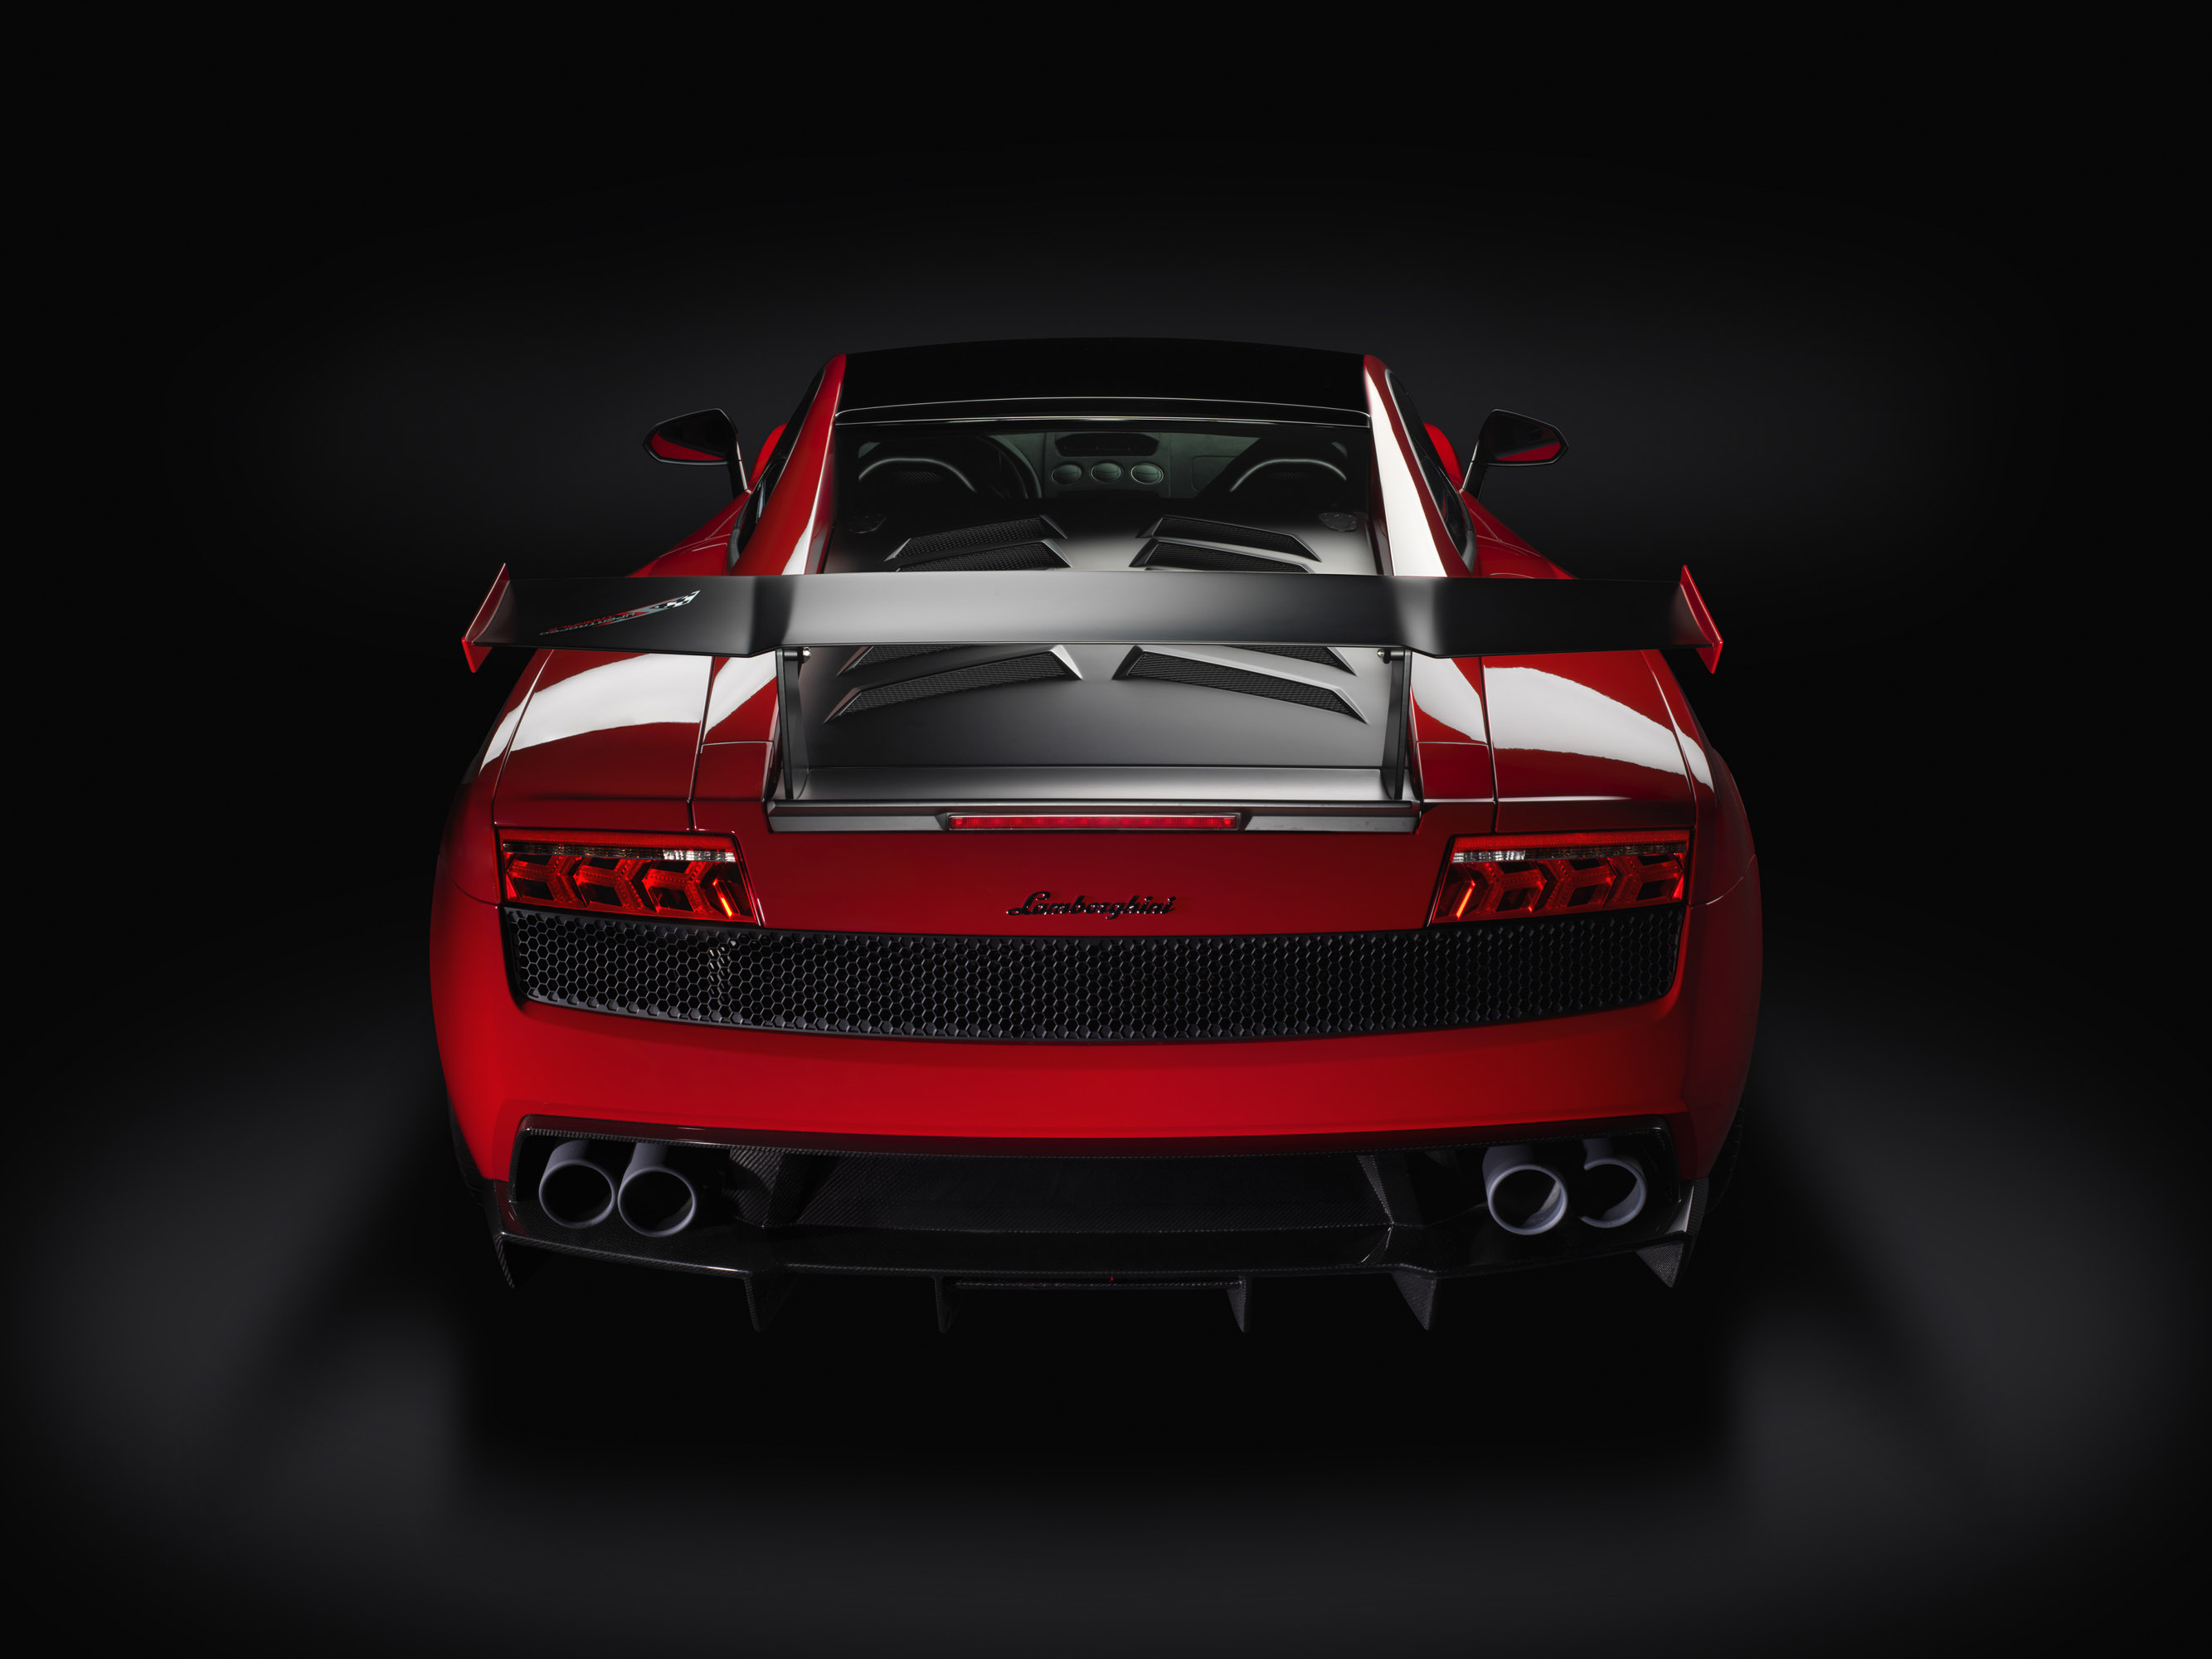 2012 Lamborghini Gallardo LP 570-4 Super Trofeo Stradale Picture #6 of 16